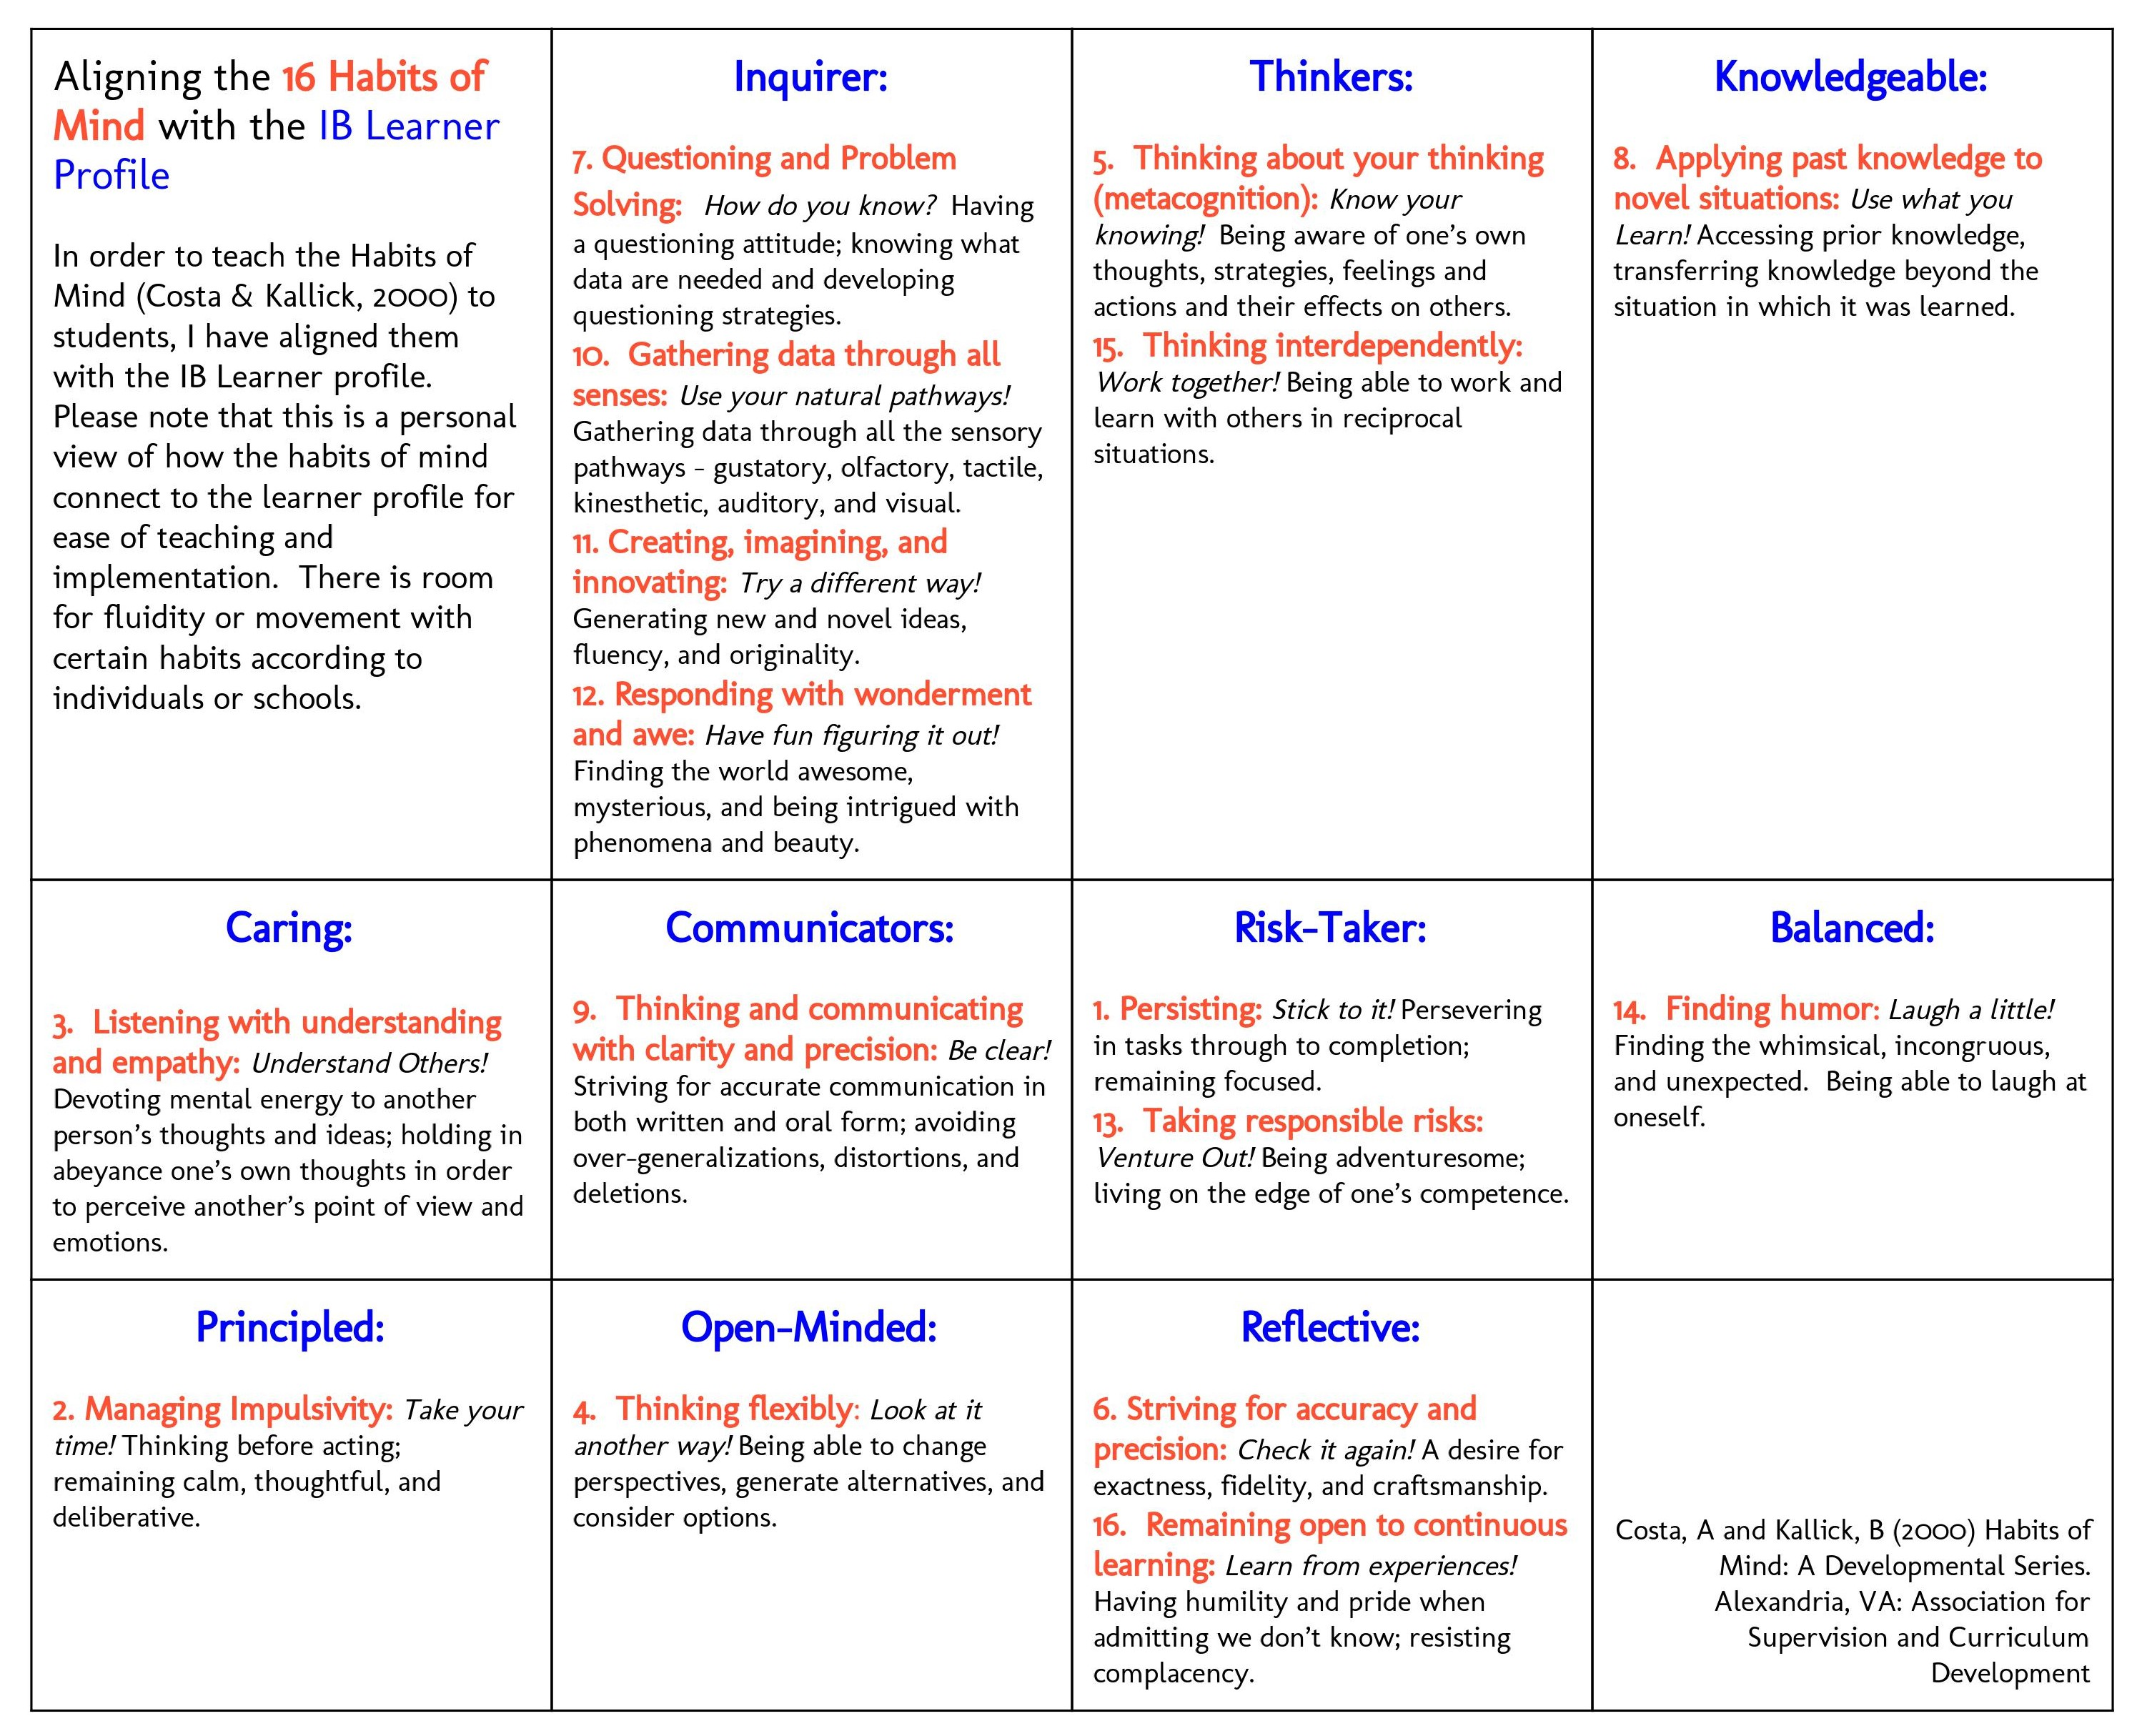 Example of a learner profile.